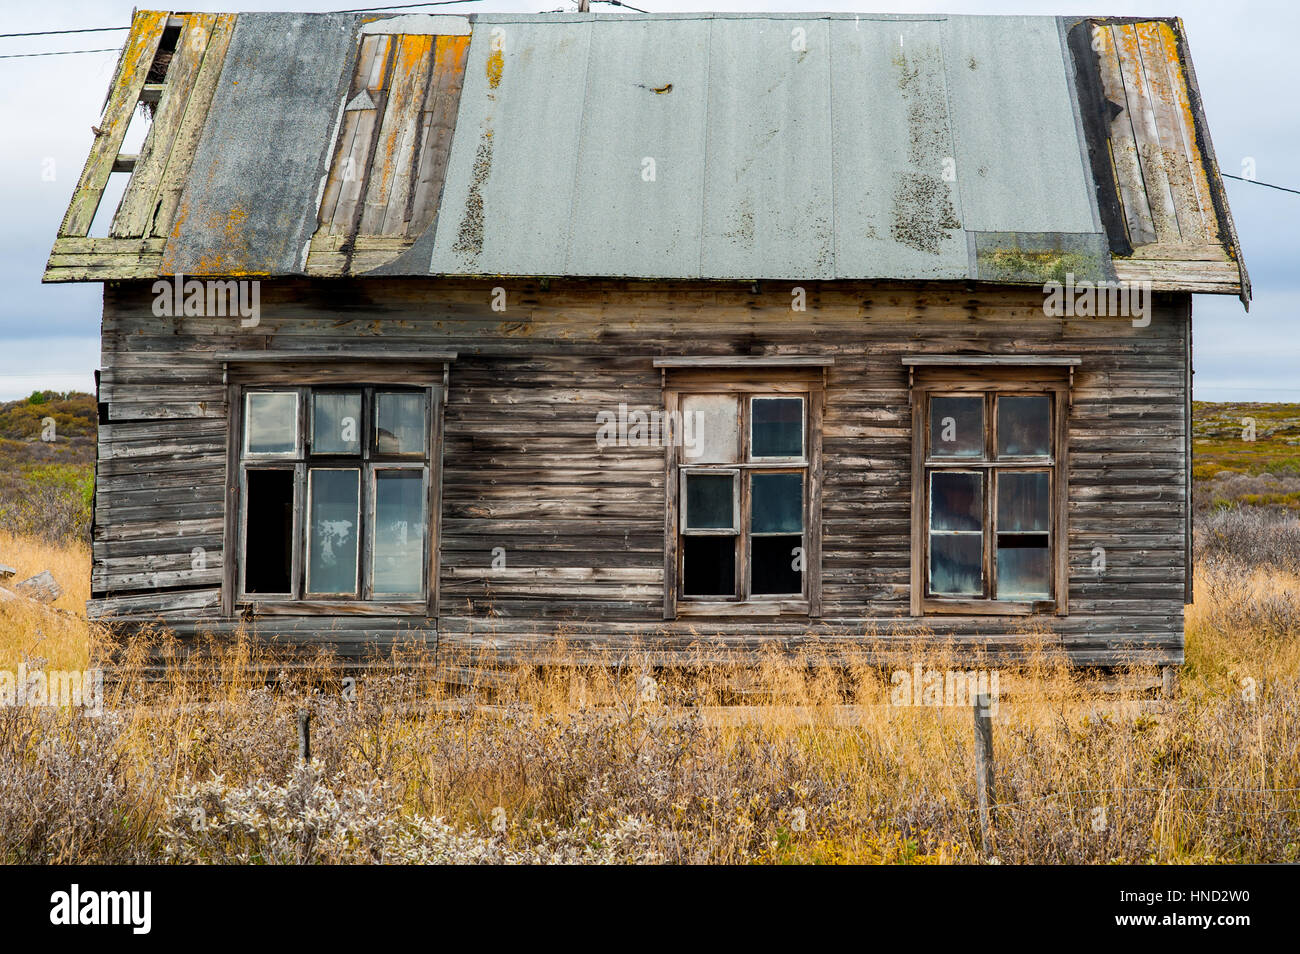 Old wooden decrepit shabby house in need of repair with for Need new windows for house